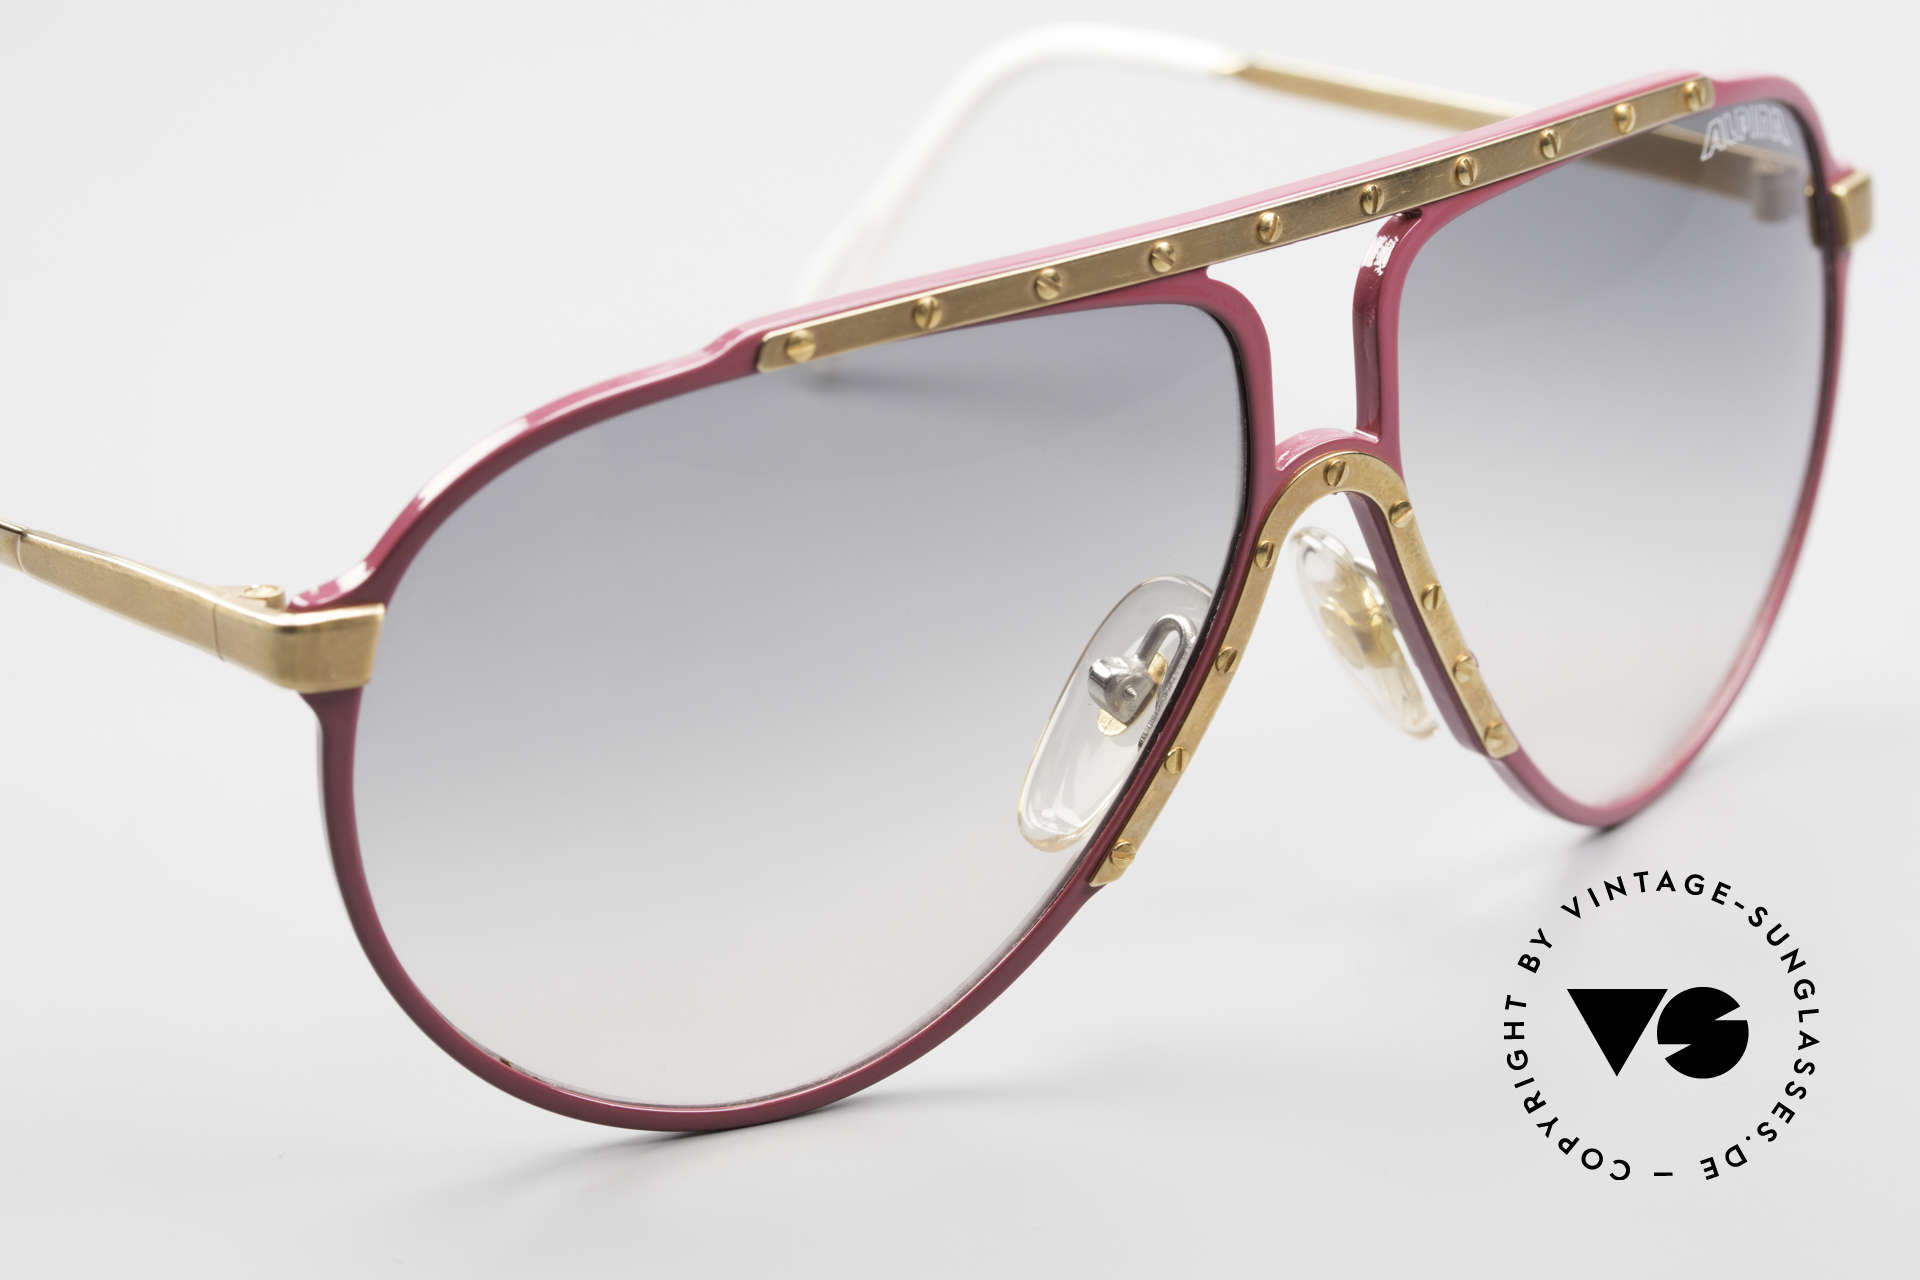 Alpina M1 Iconic Vintage Sunglasses 80s, color on the backside is slightly damaged (7. photo), Made for Women